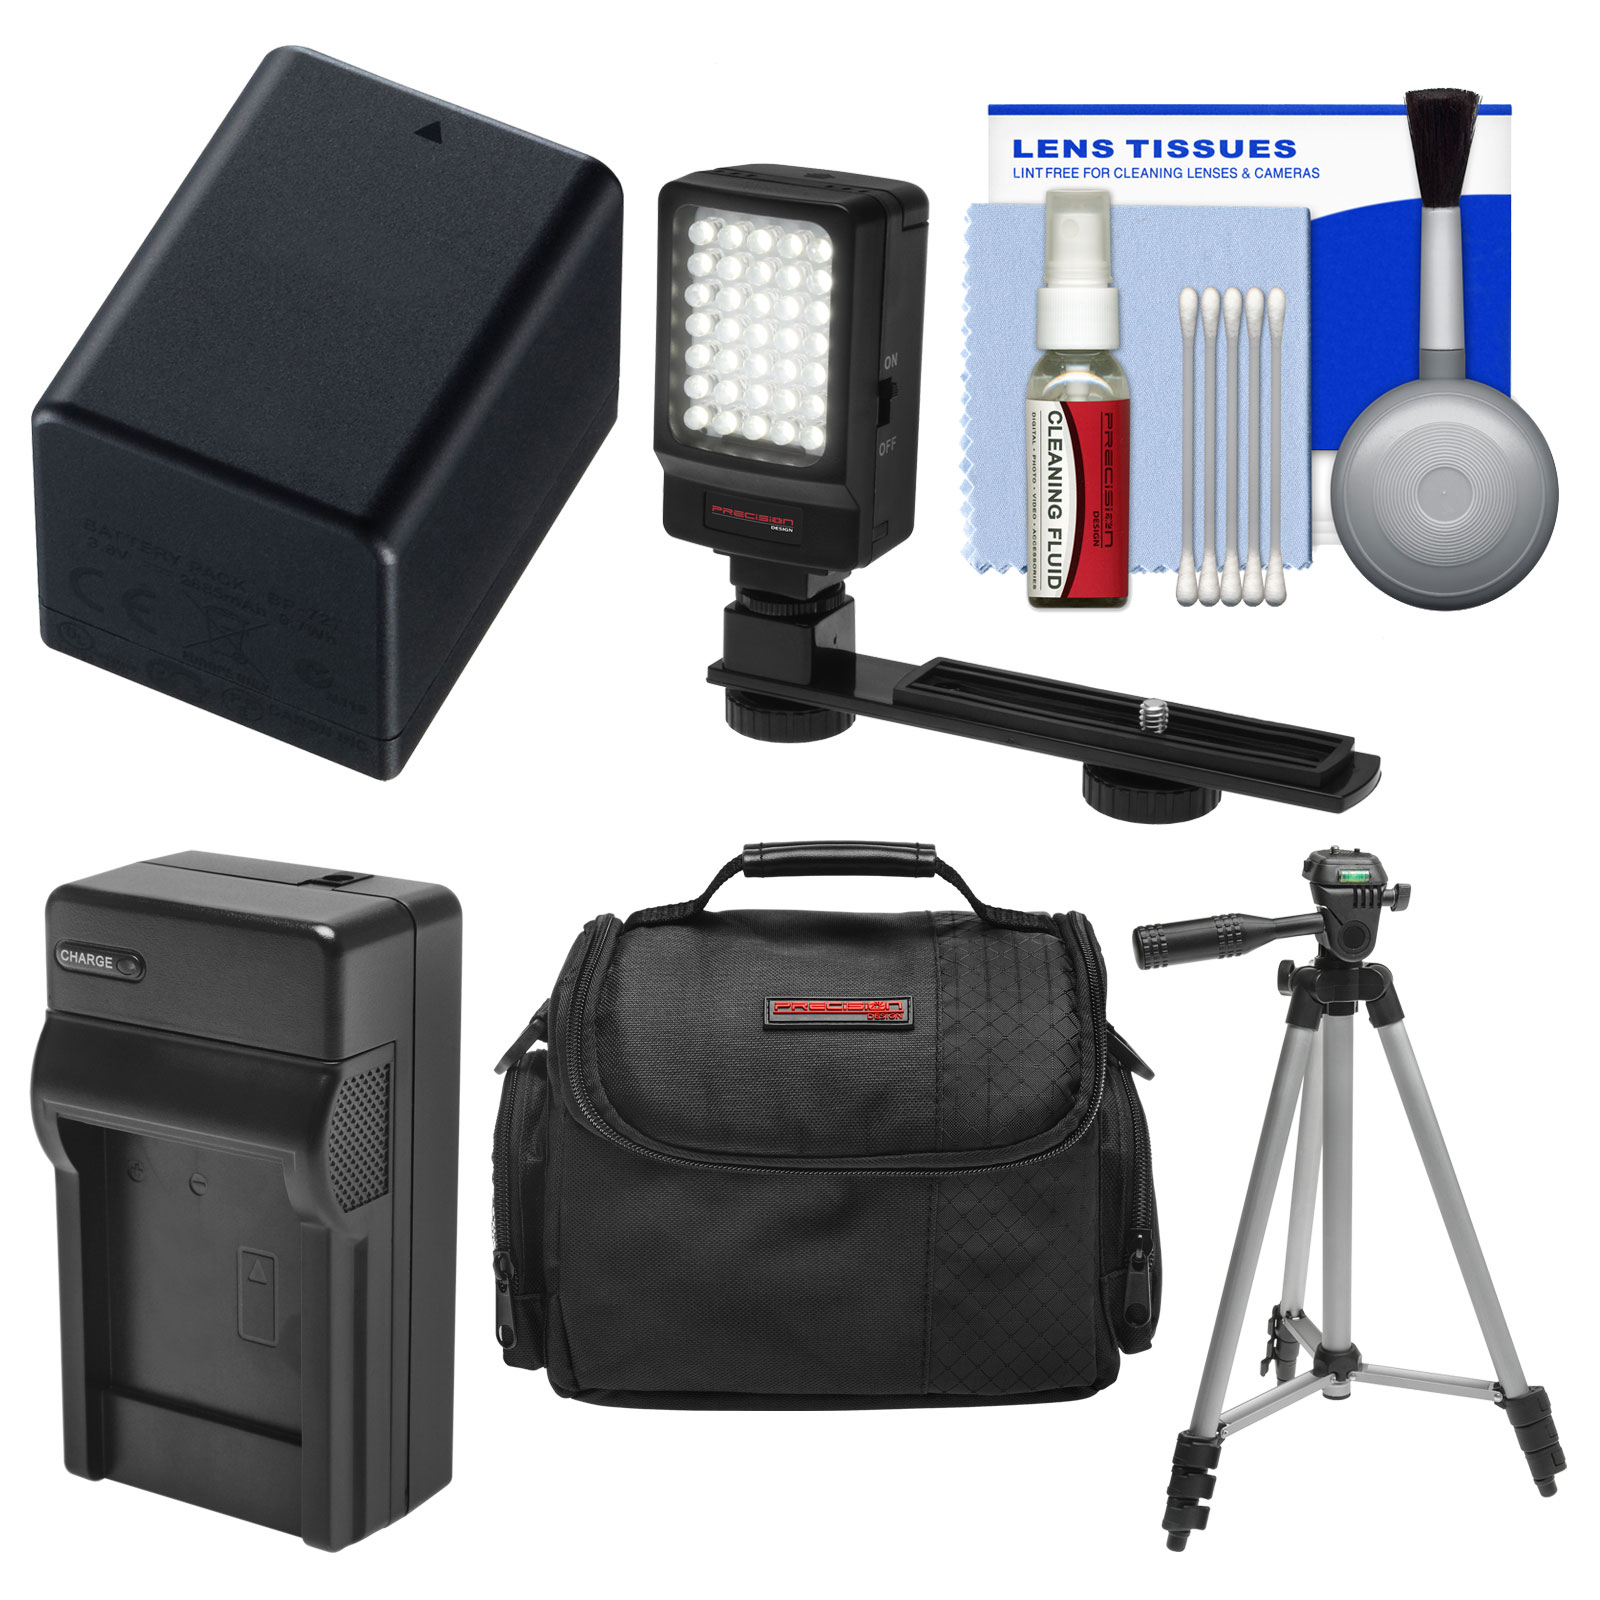 Essentials Bundle for Canon Vixia HF R60, R600, R62, R70, R700, R72 Camcorder with Case + LED Light + BP-727 Battery & Charger + Tripod + Cleaning Kit